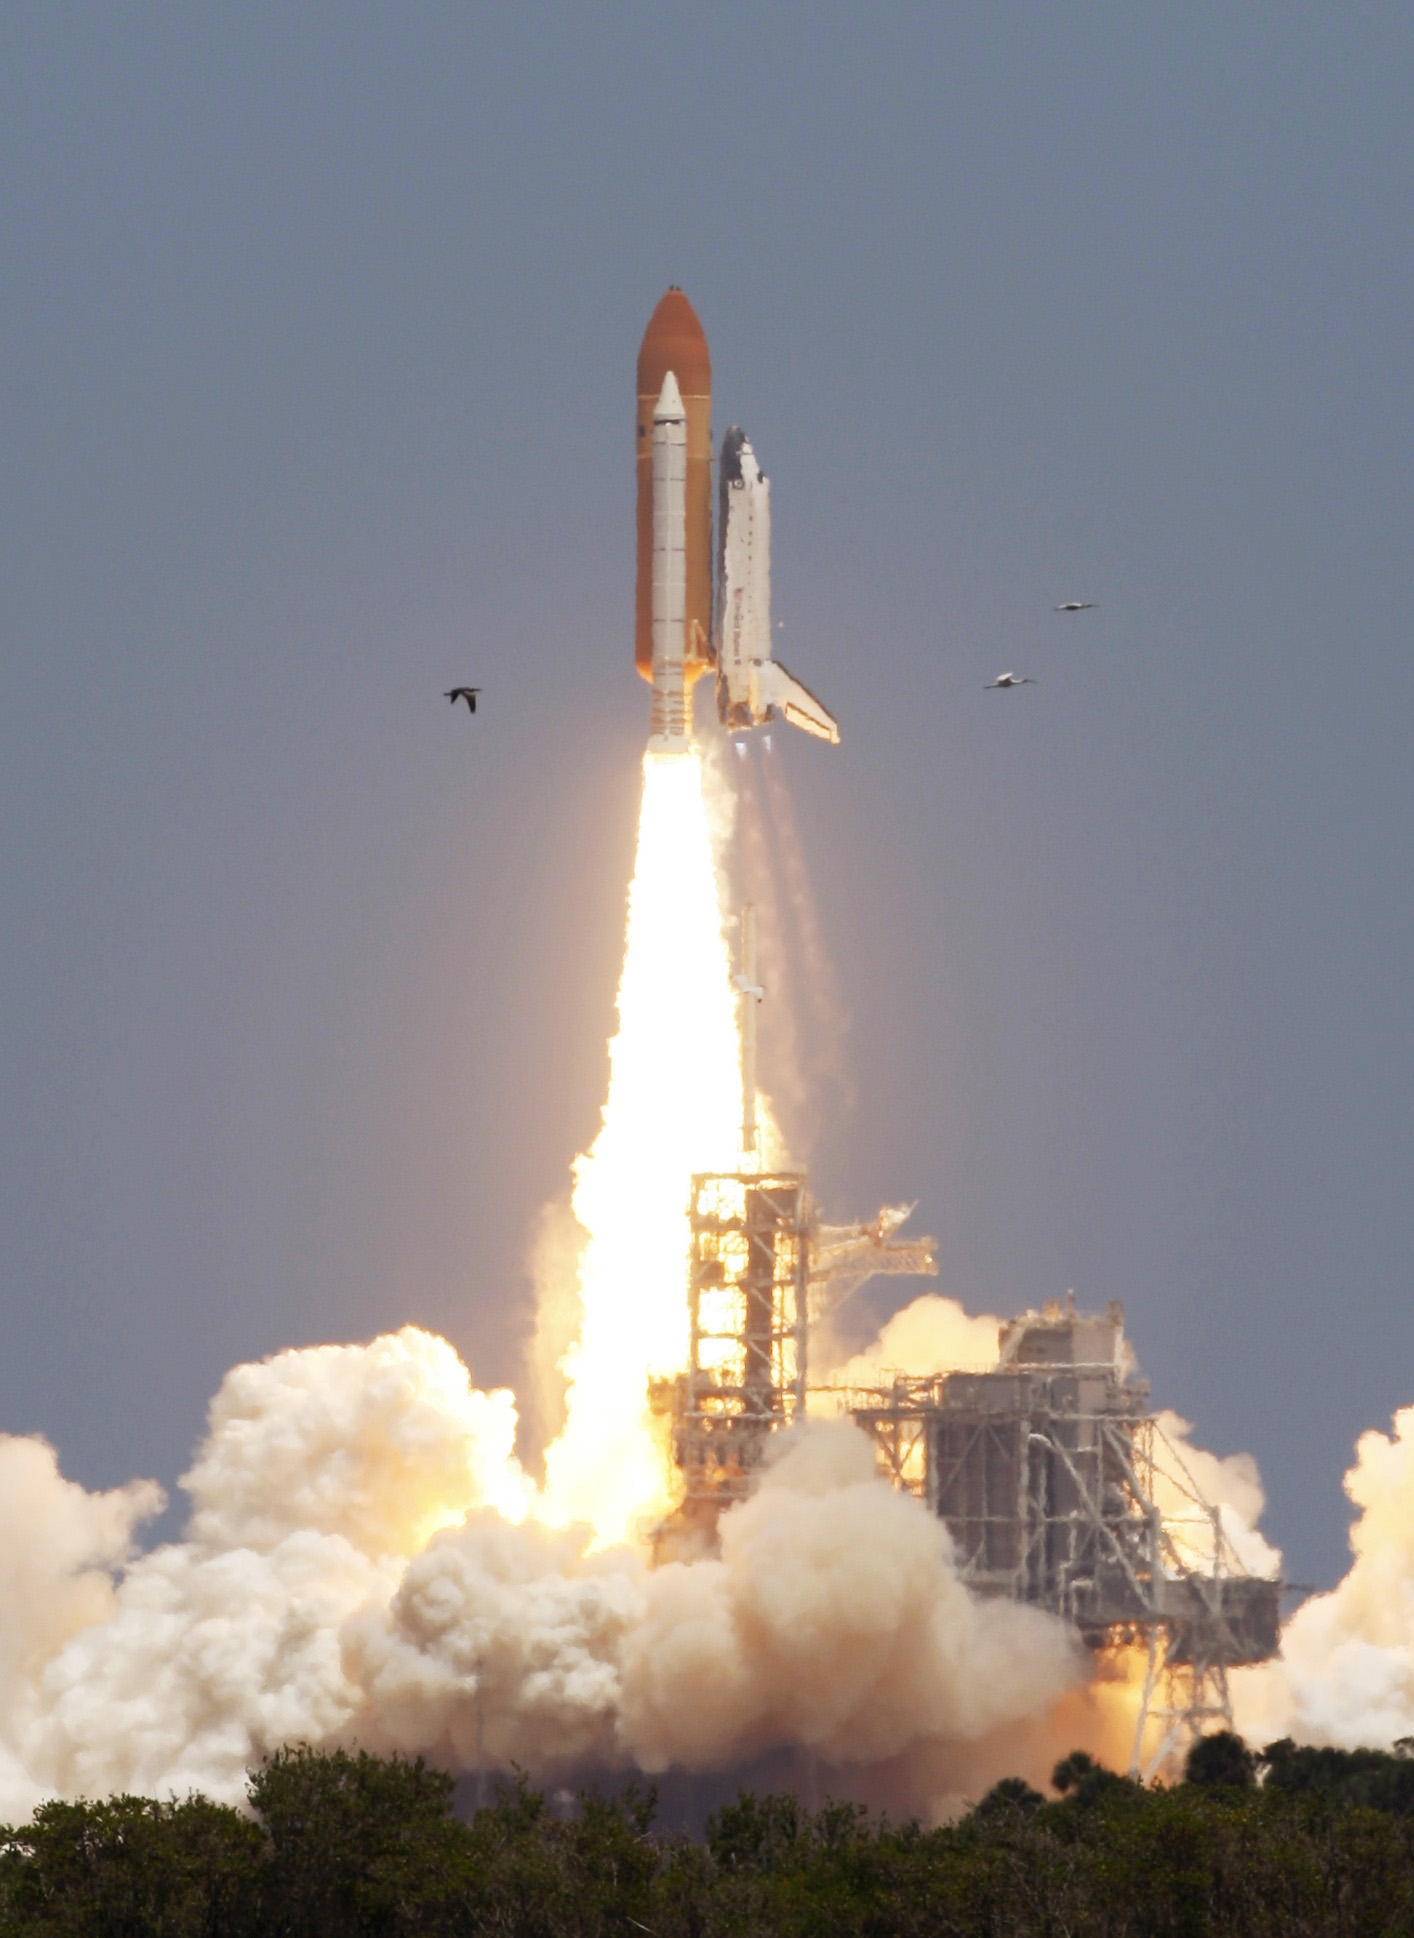 U.S. shuttle Atlantis lifts off for final journey